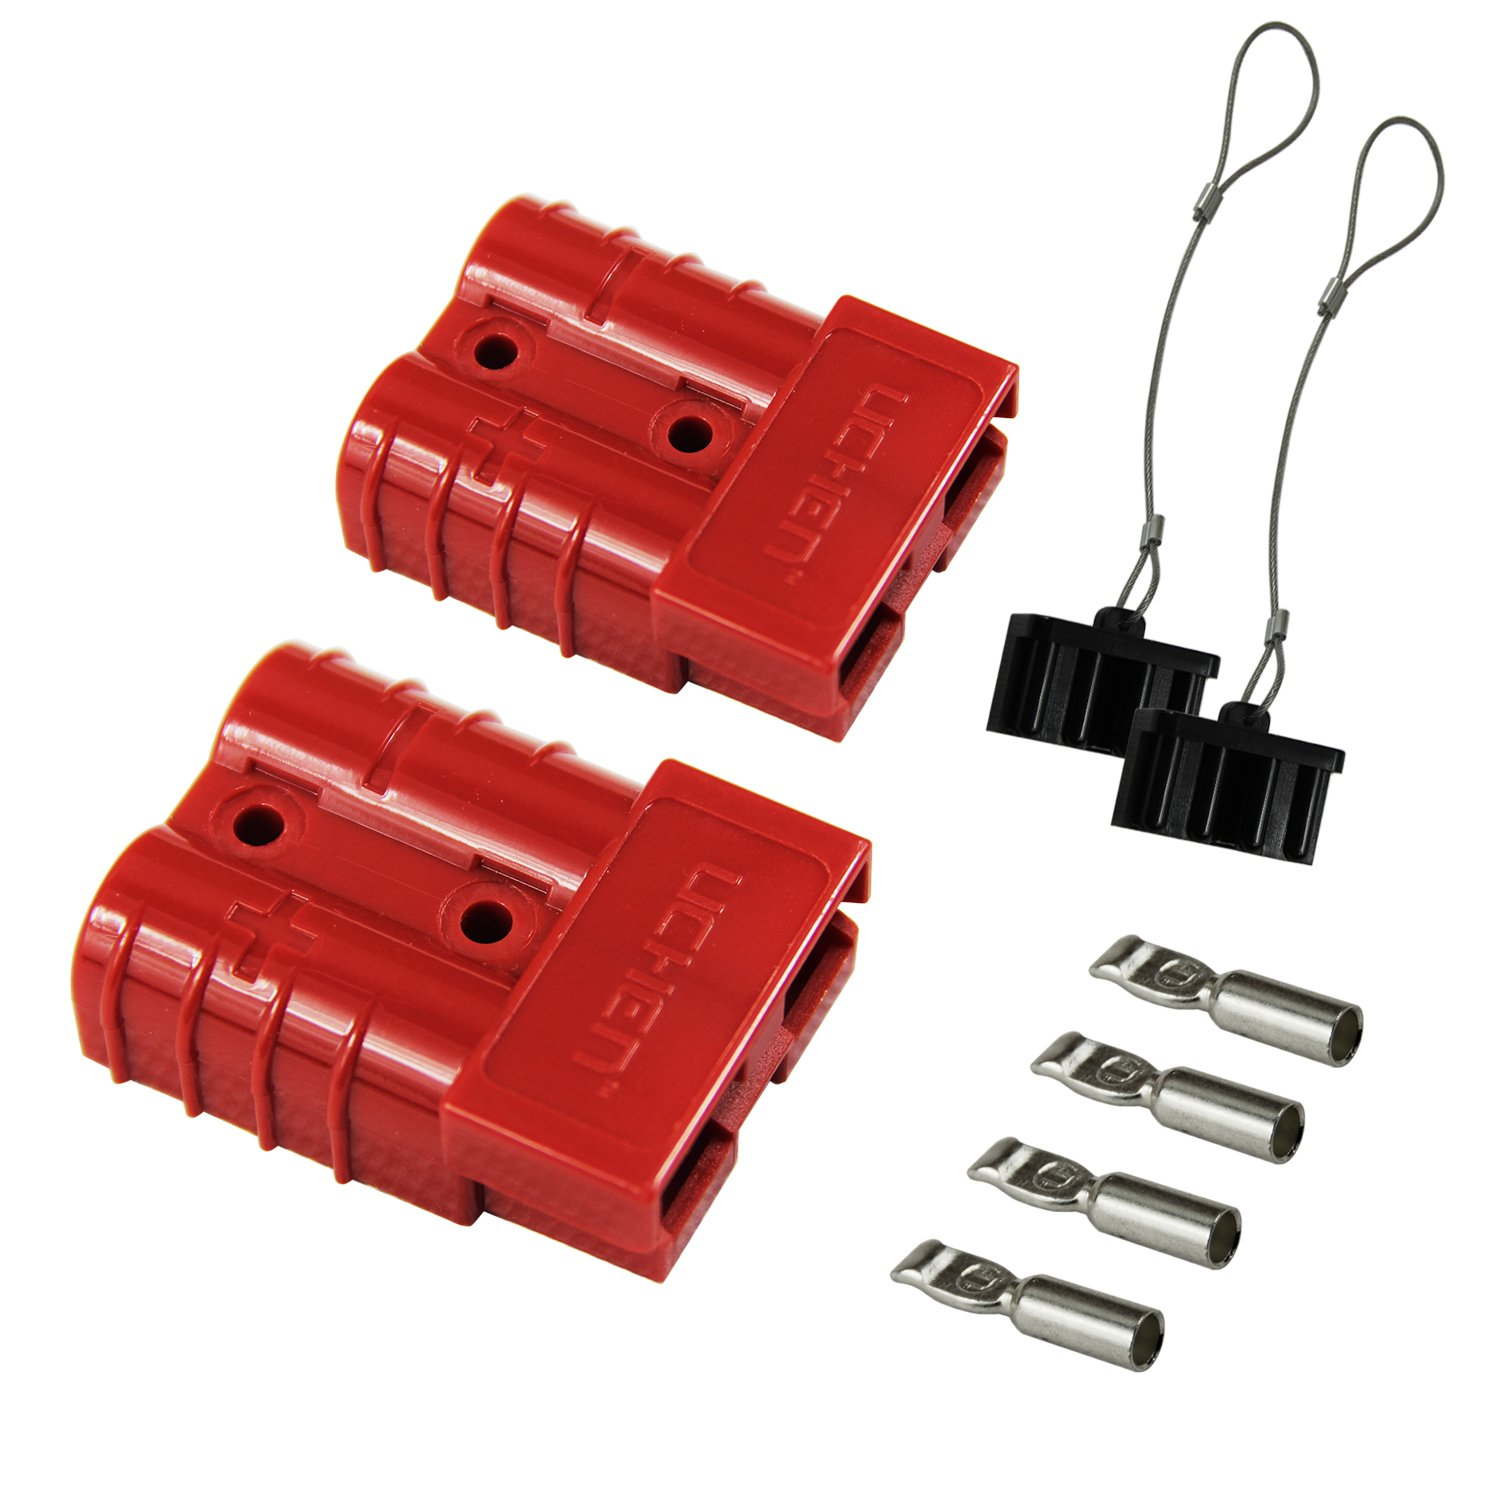 Hyclat Red 6 10 Gauge Battery Quick Connect Disconnect Wiring Terminals Supplies Wire Harness Plug Connector Recovery Winch Trailer Automotive